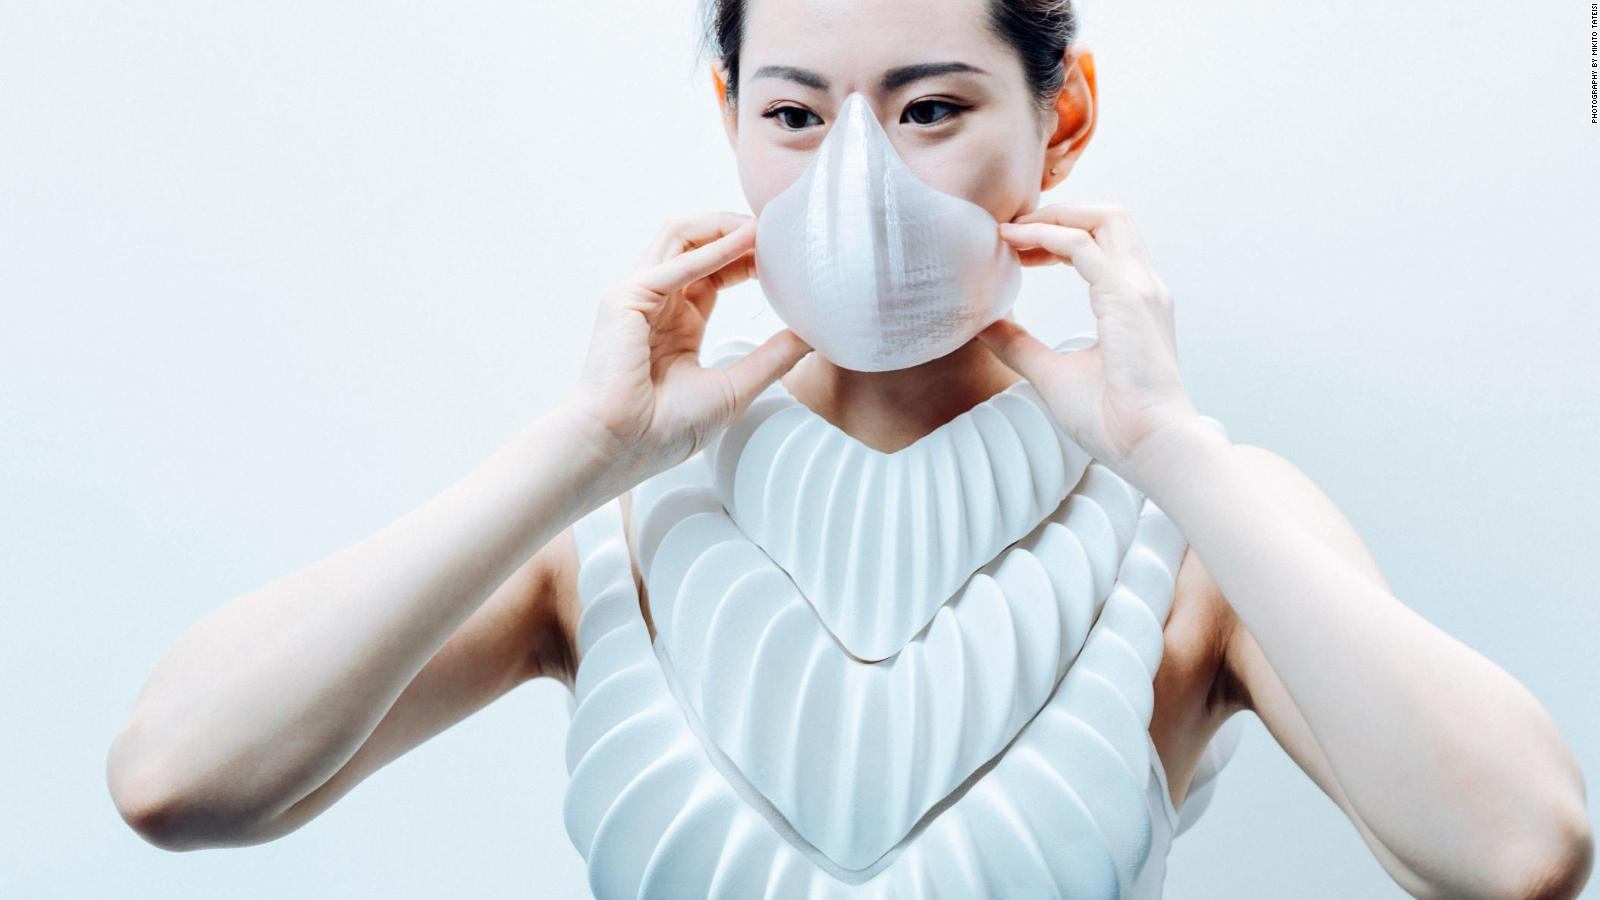 Artificial gills for humans could become a reality - CNN Style